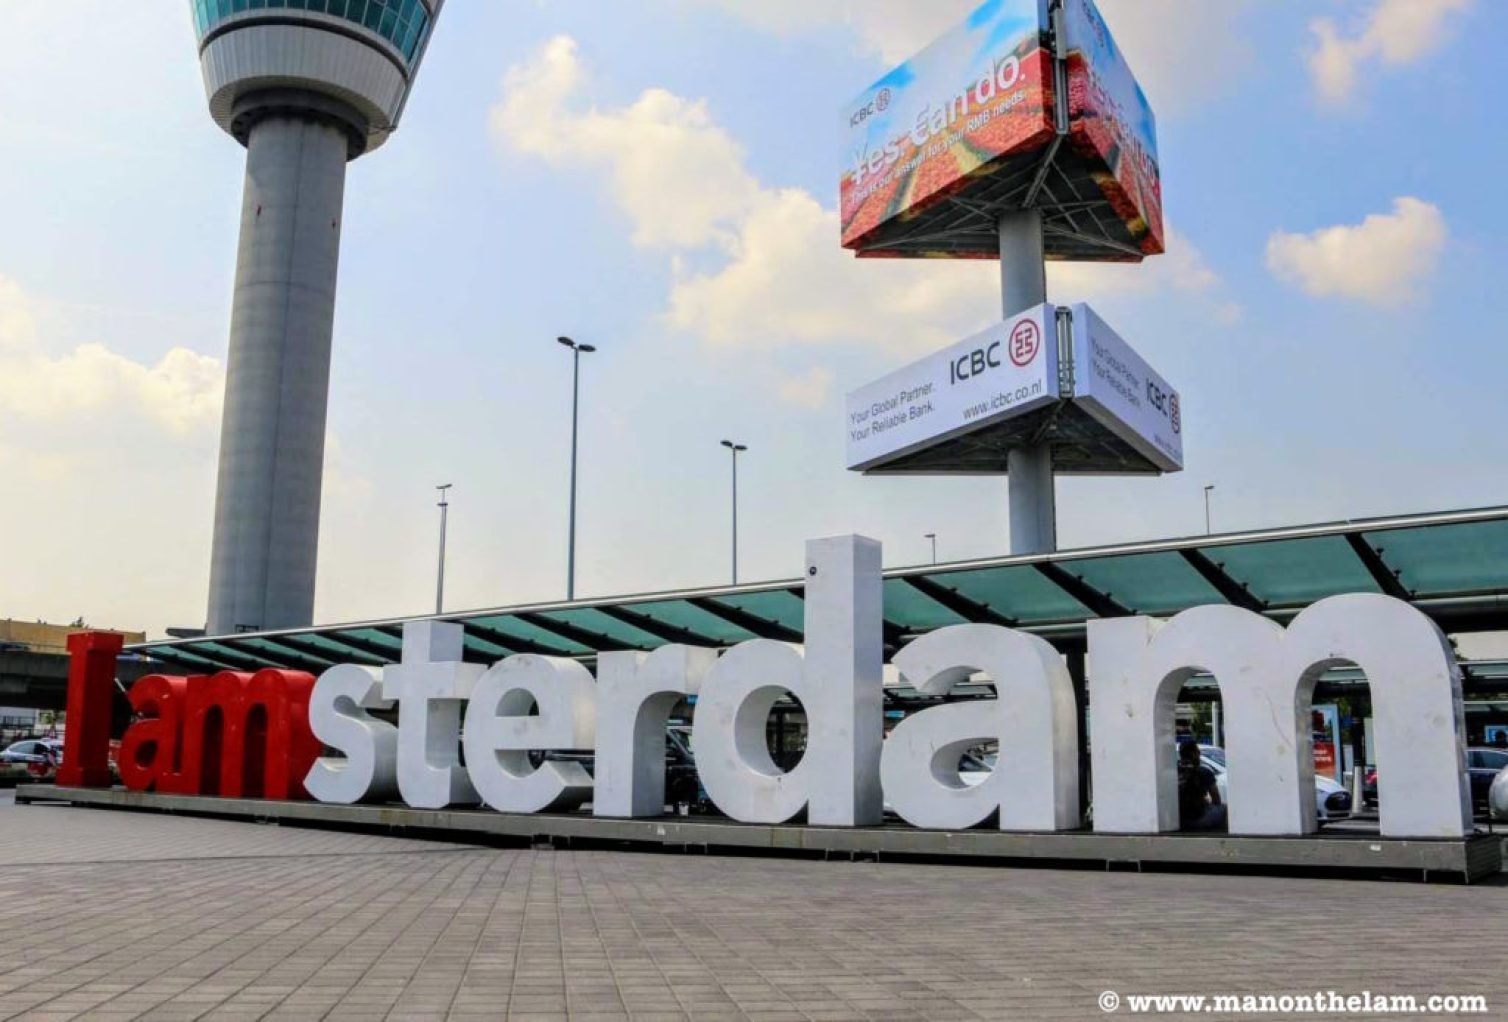 iamsterdam sign schiphol airport no people no crowds